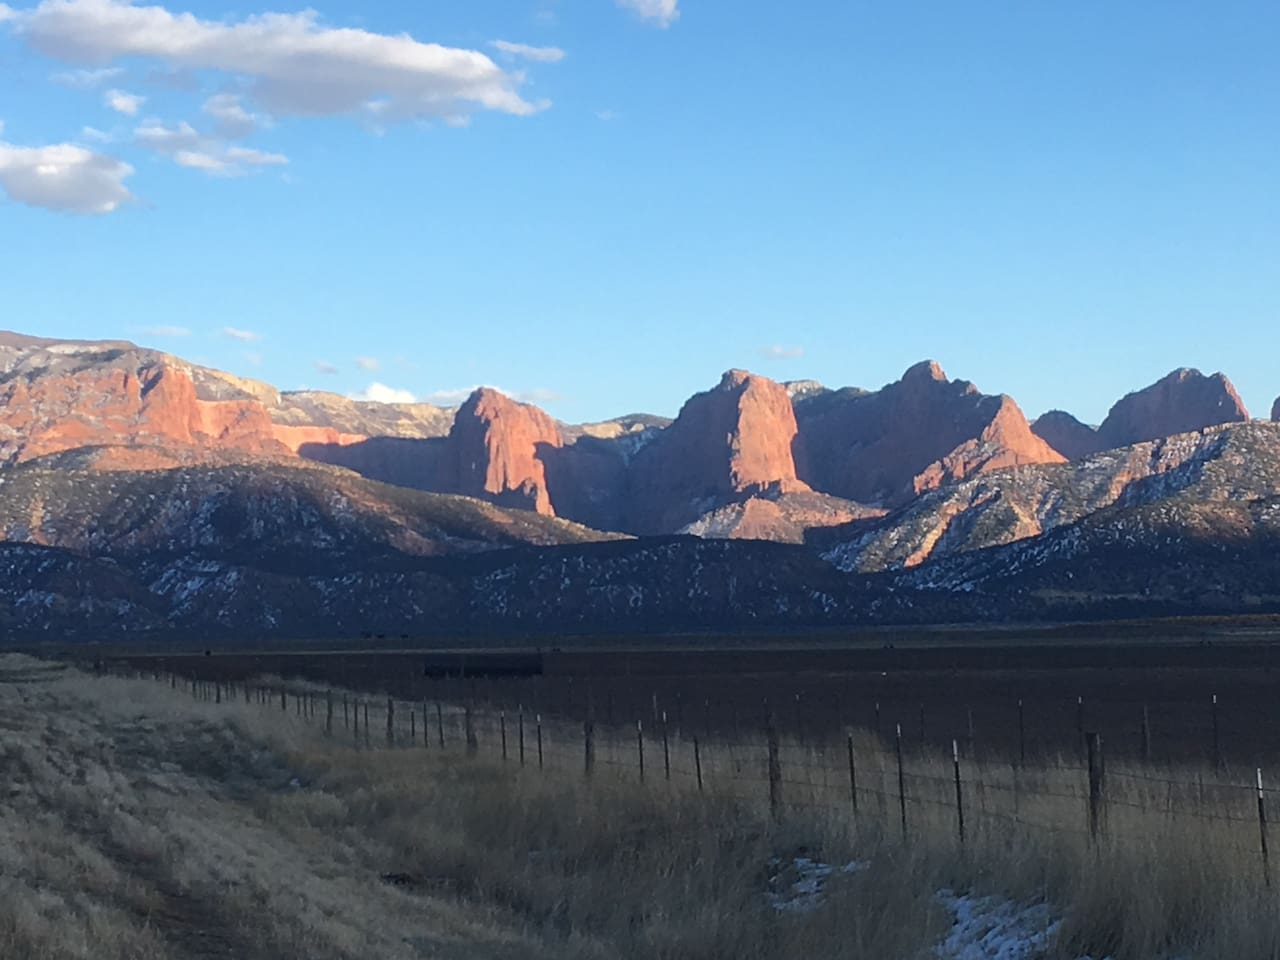 Kolob National Park - 10 minutes away